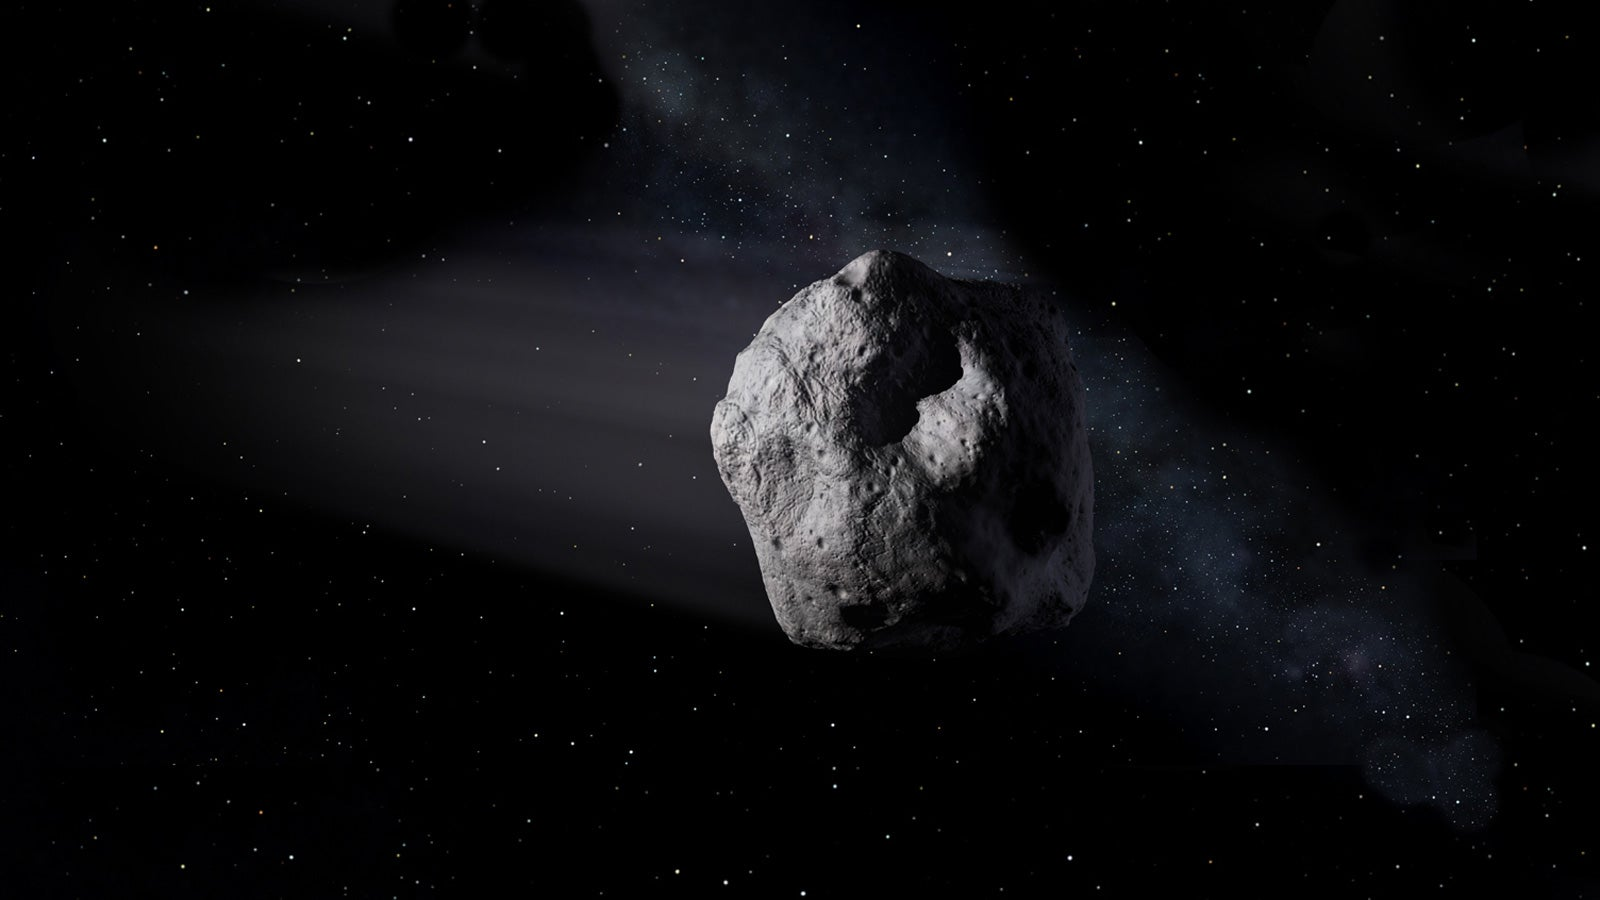 Asteroid will fly by Earth closer than our satellites, Nasa says - The Independent